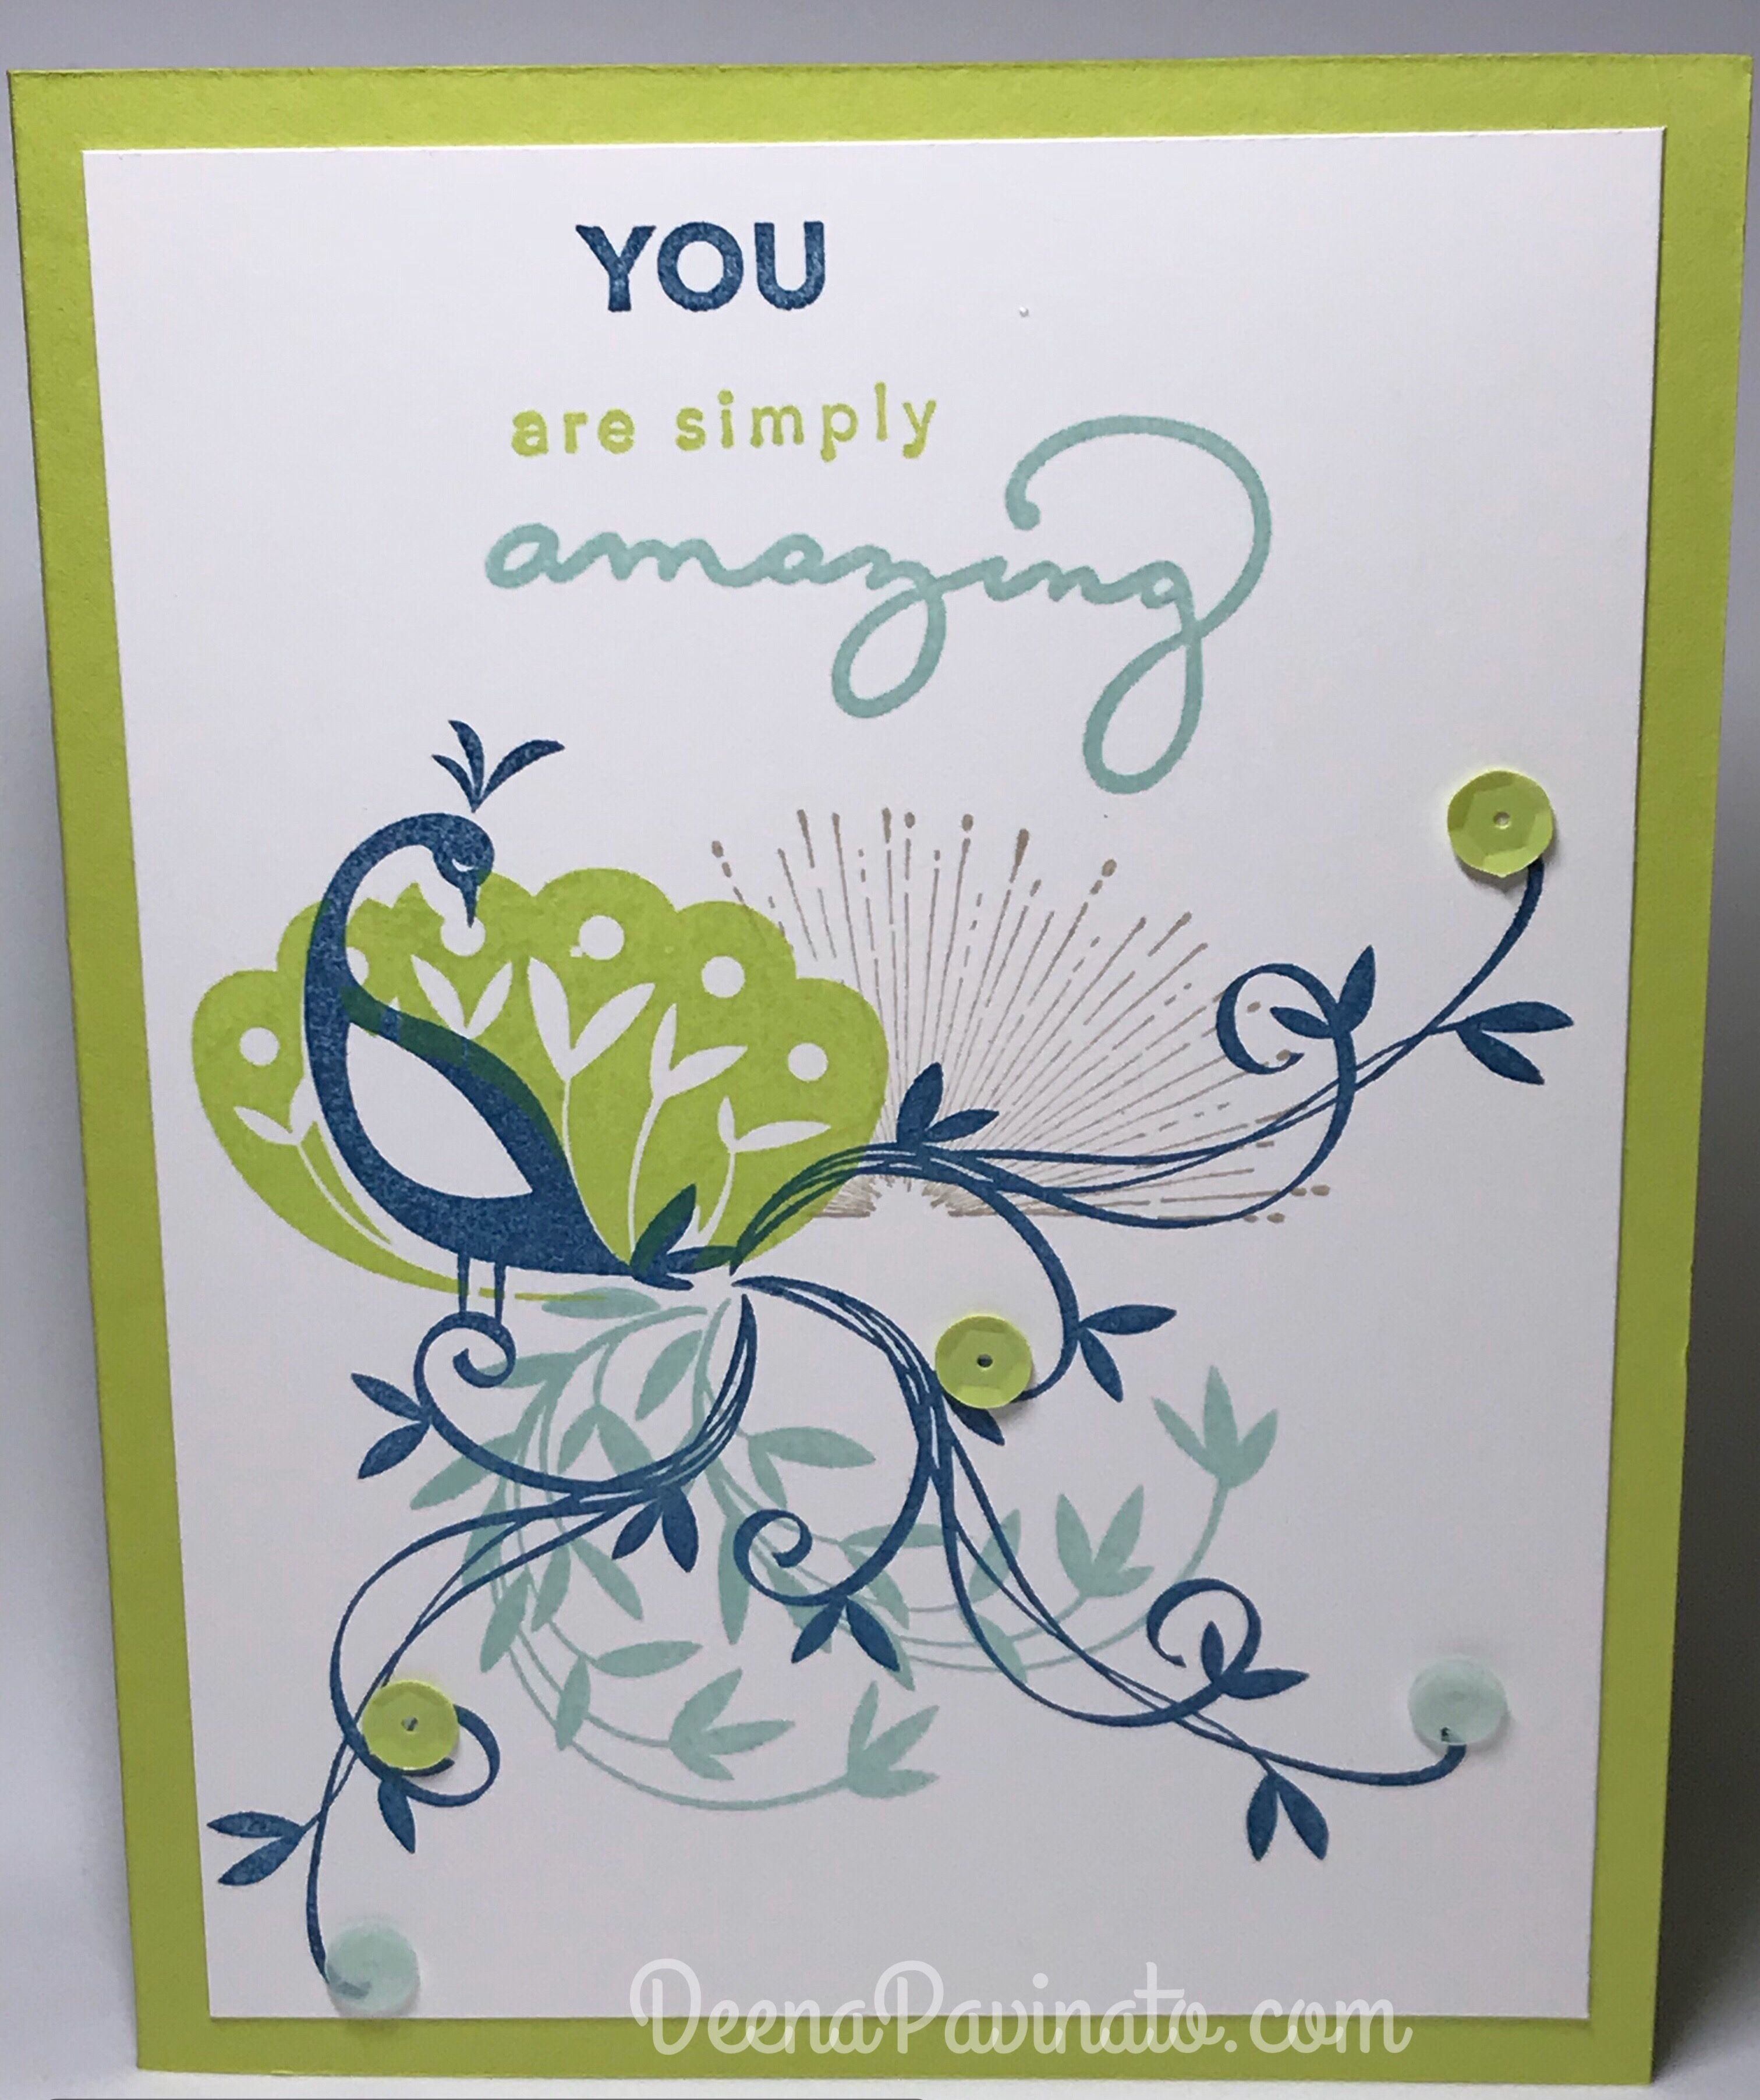 beautiful peacock and amazing you stamp sets used from